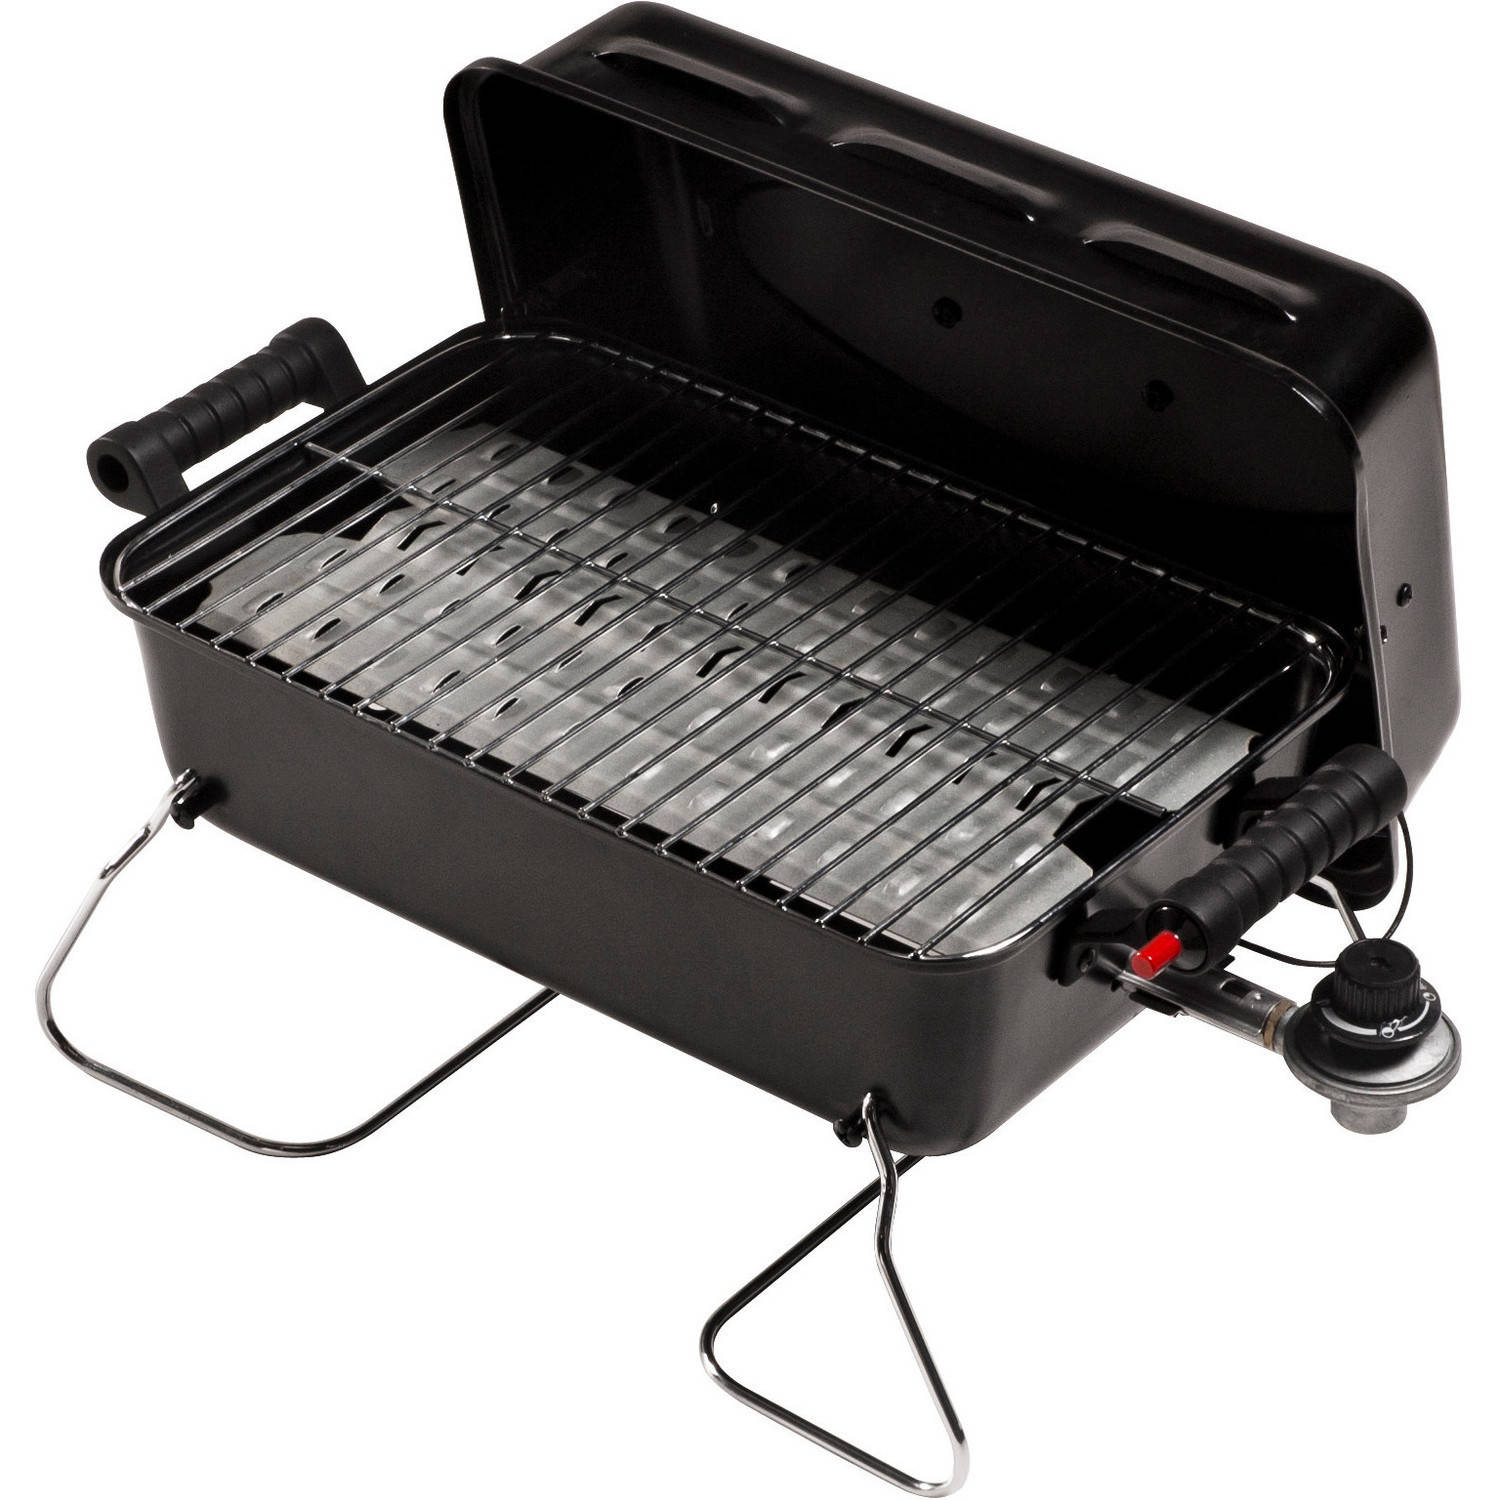 "Char-Broil 48"" Push Button Ignition Gas Grill"